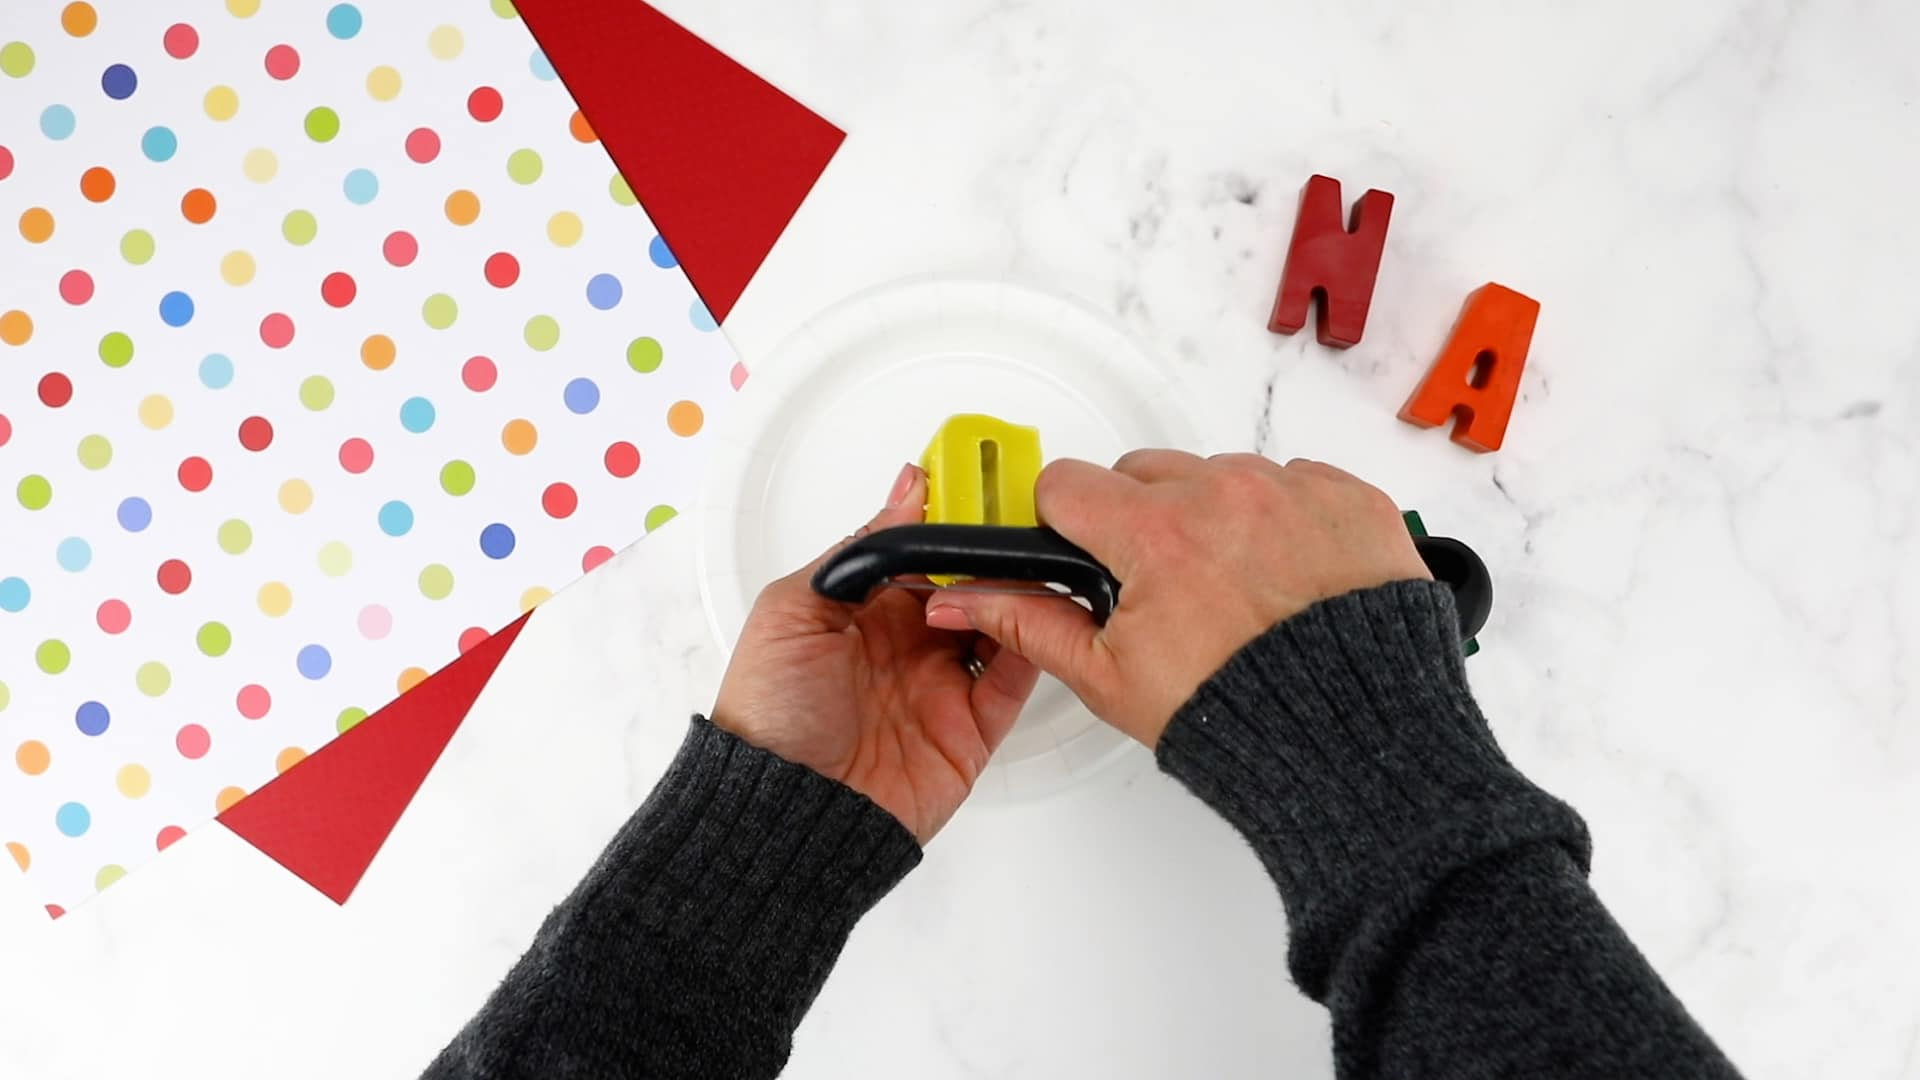 crayon name craft shaving down the letters